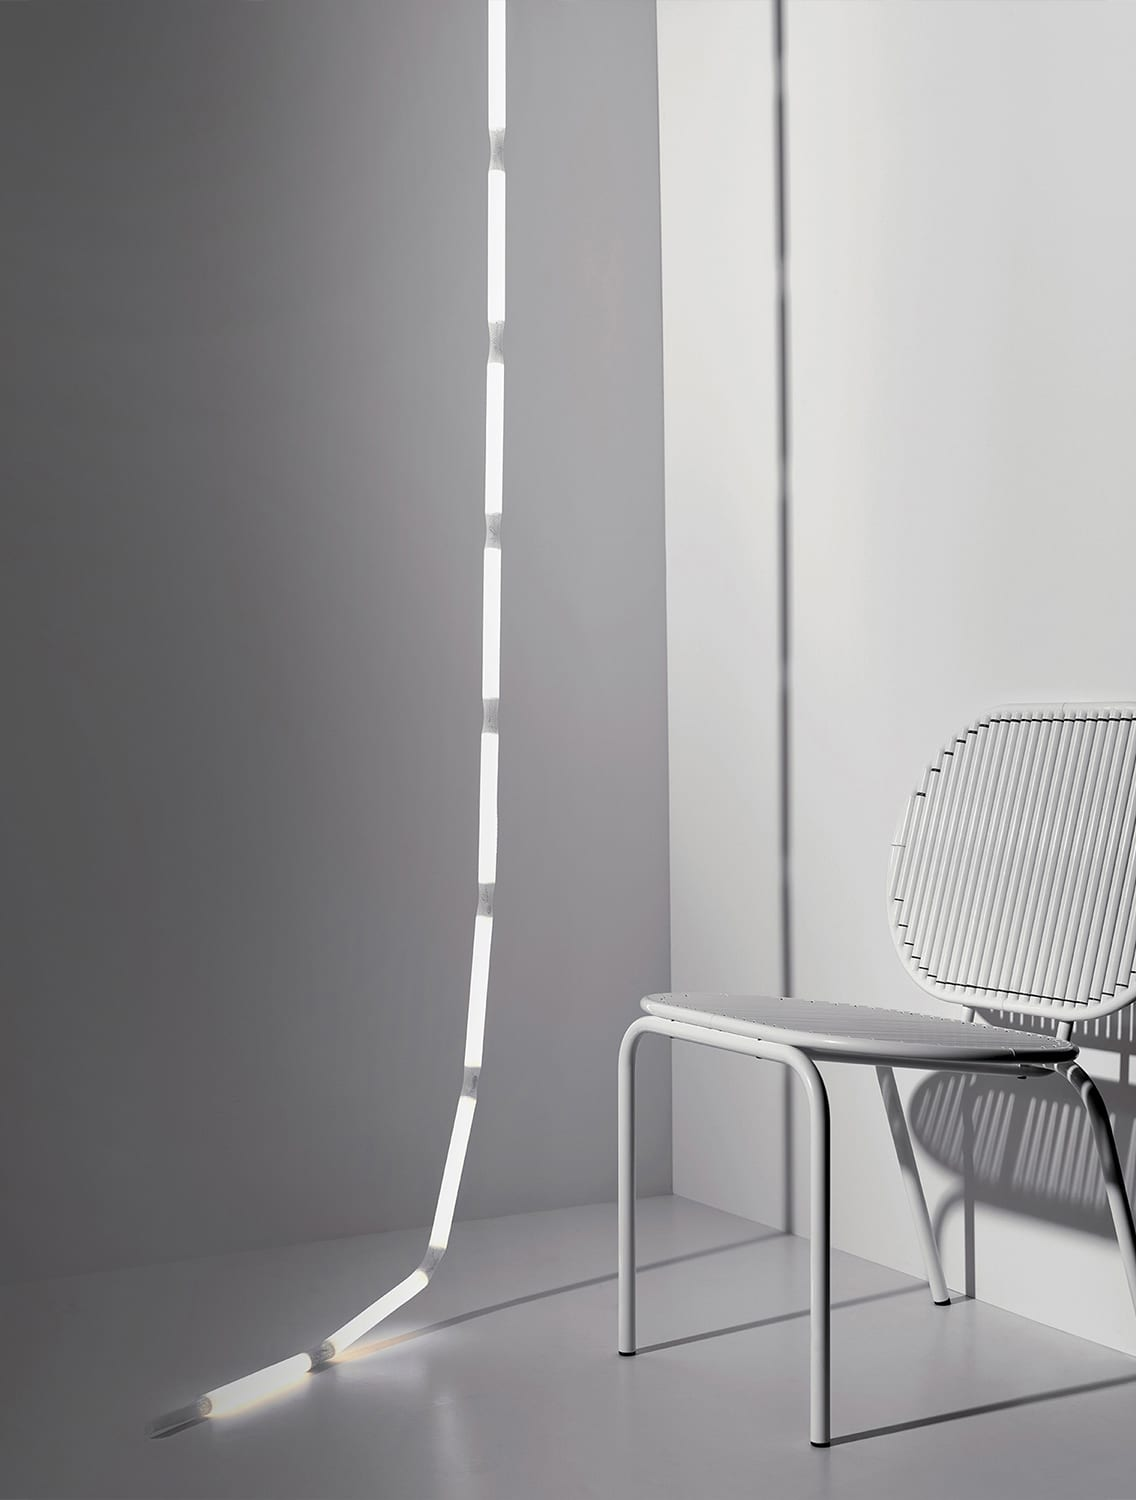 Rope Light by Verena Henning for AKTTEM at IMM Cologne 2018 | Yellowtrace